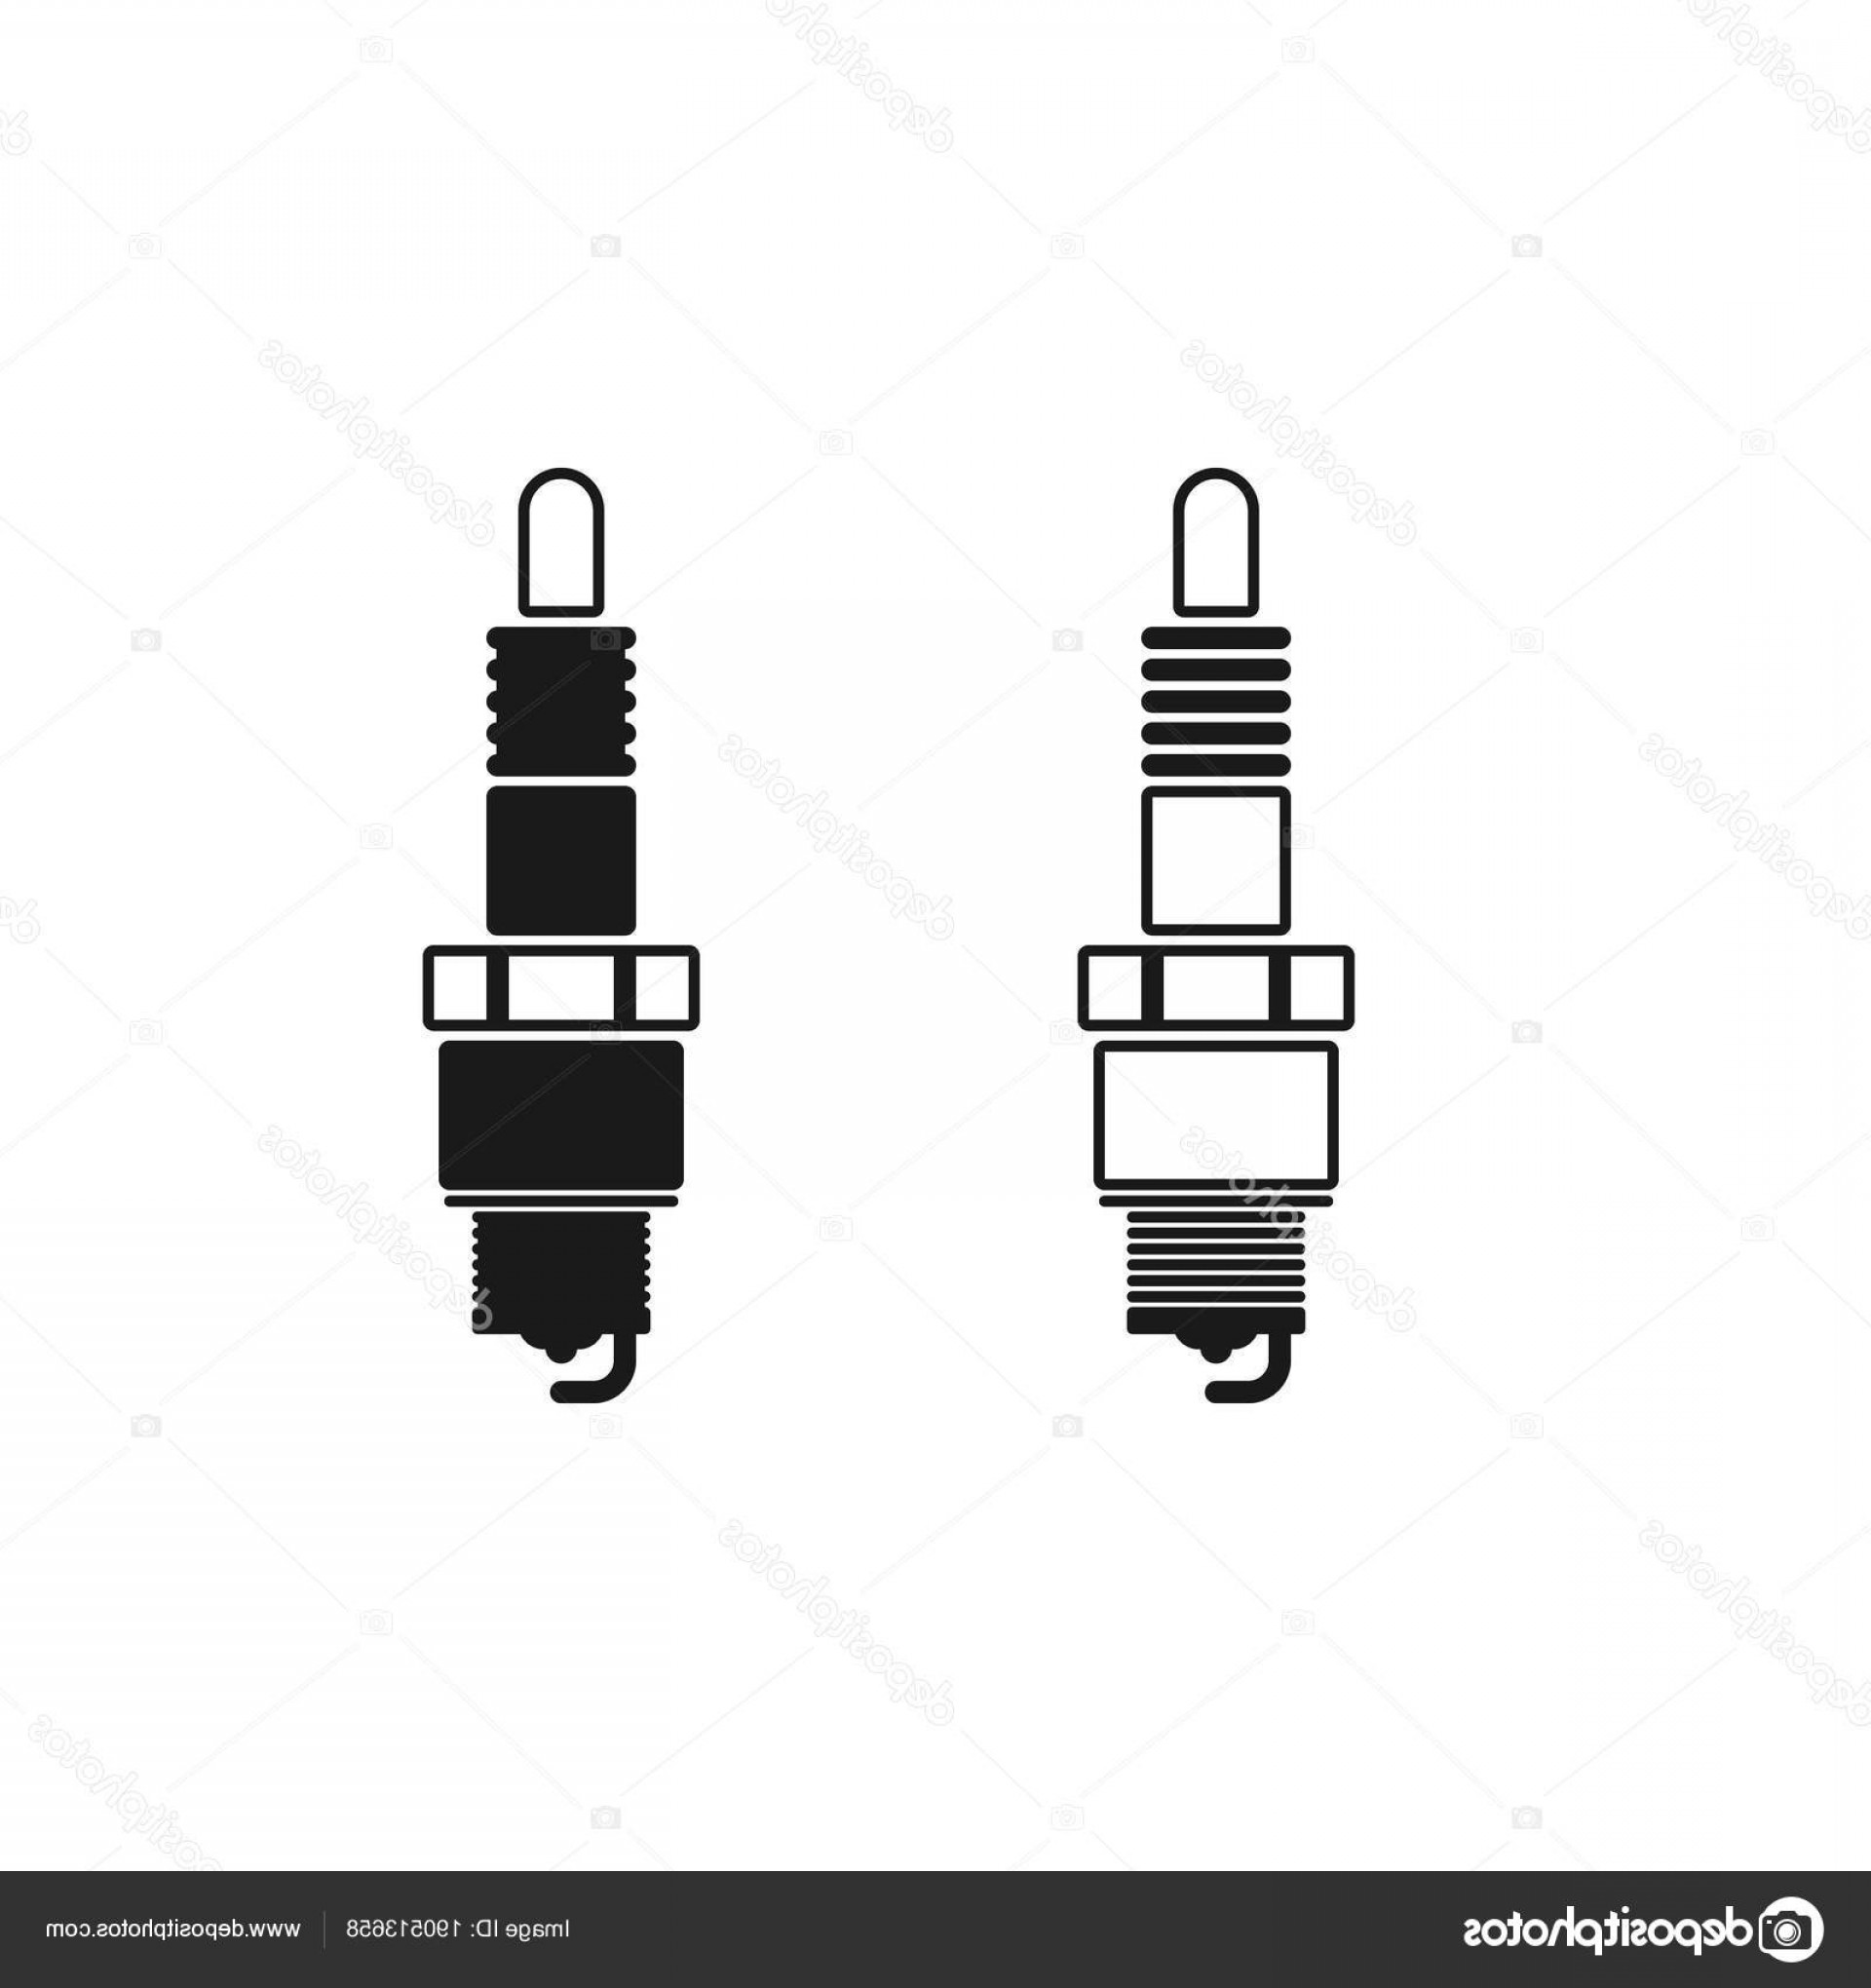 Spark Plug Vector: Stock Illustration Spark Plug Vector Icon Mobile